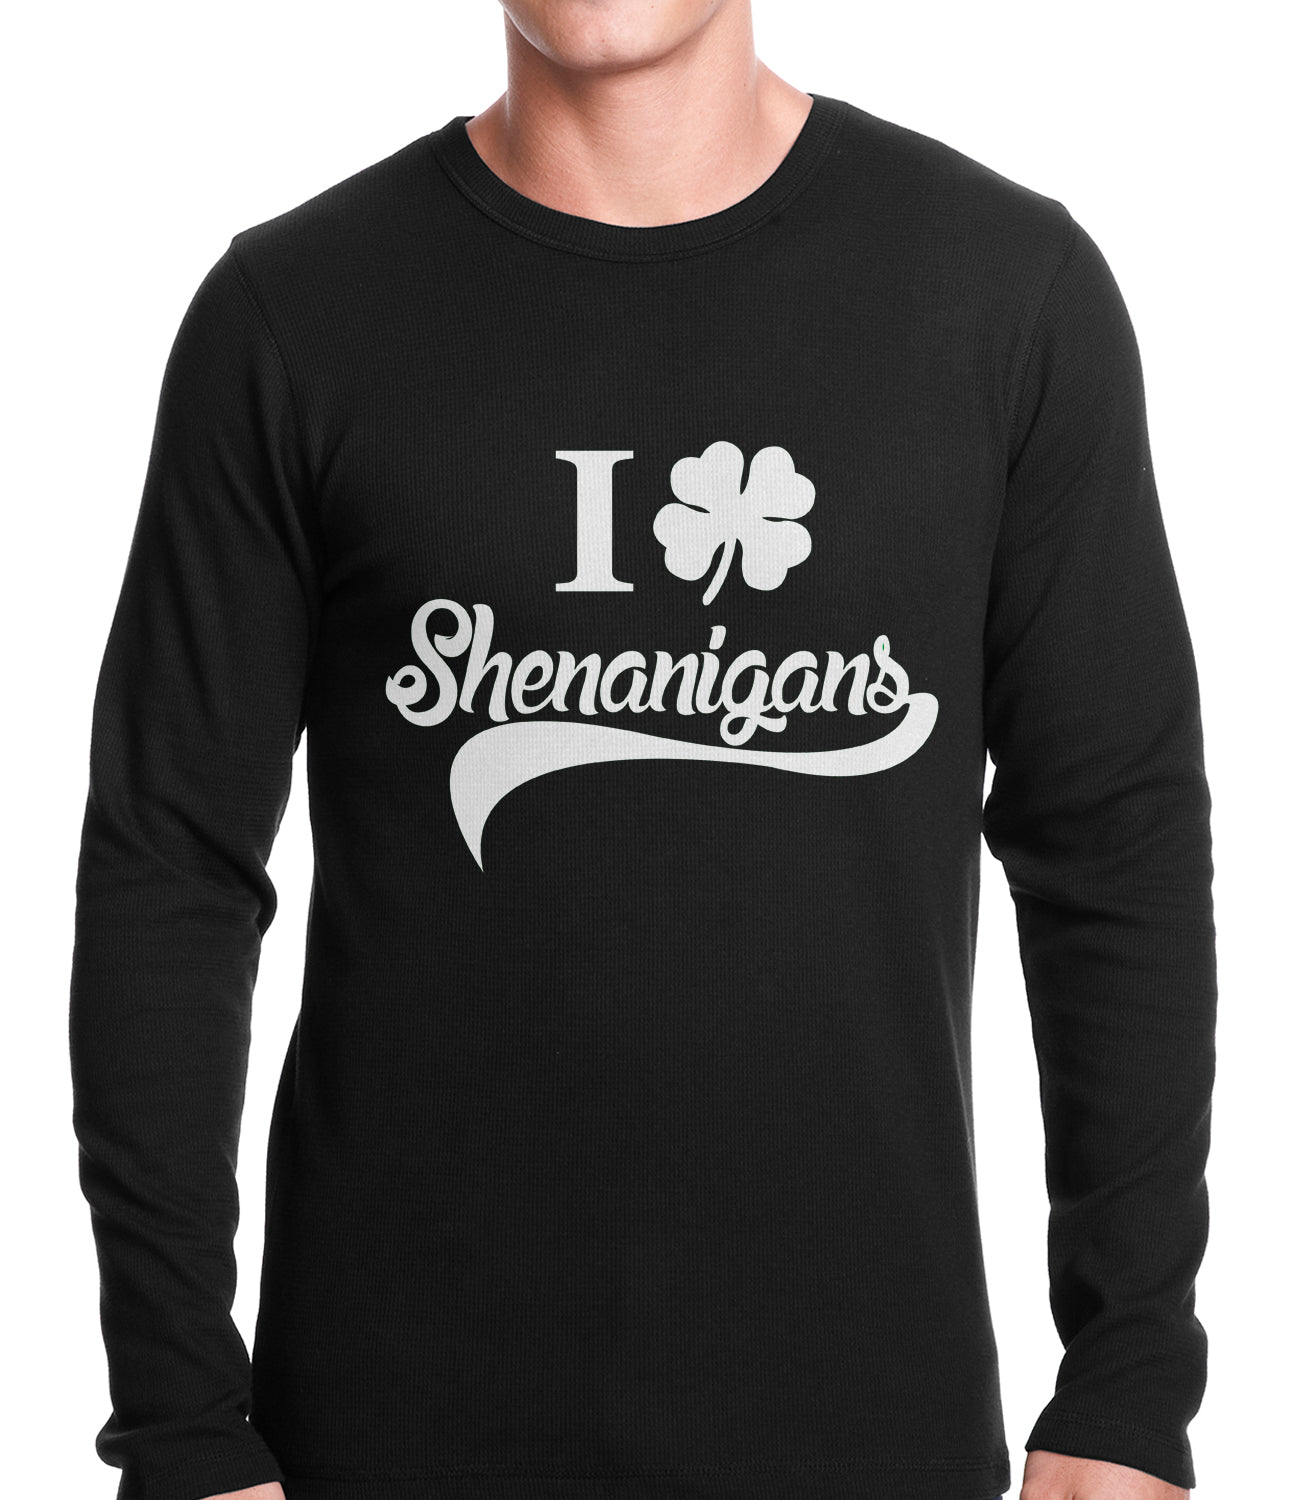 58e9ae673 I Clover Shenanigans Funny St Patricks Day Thermal Shirt – Bewild